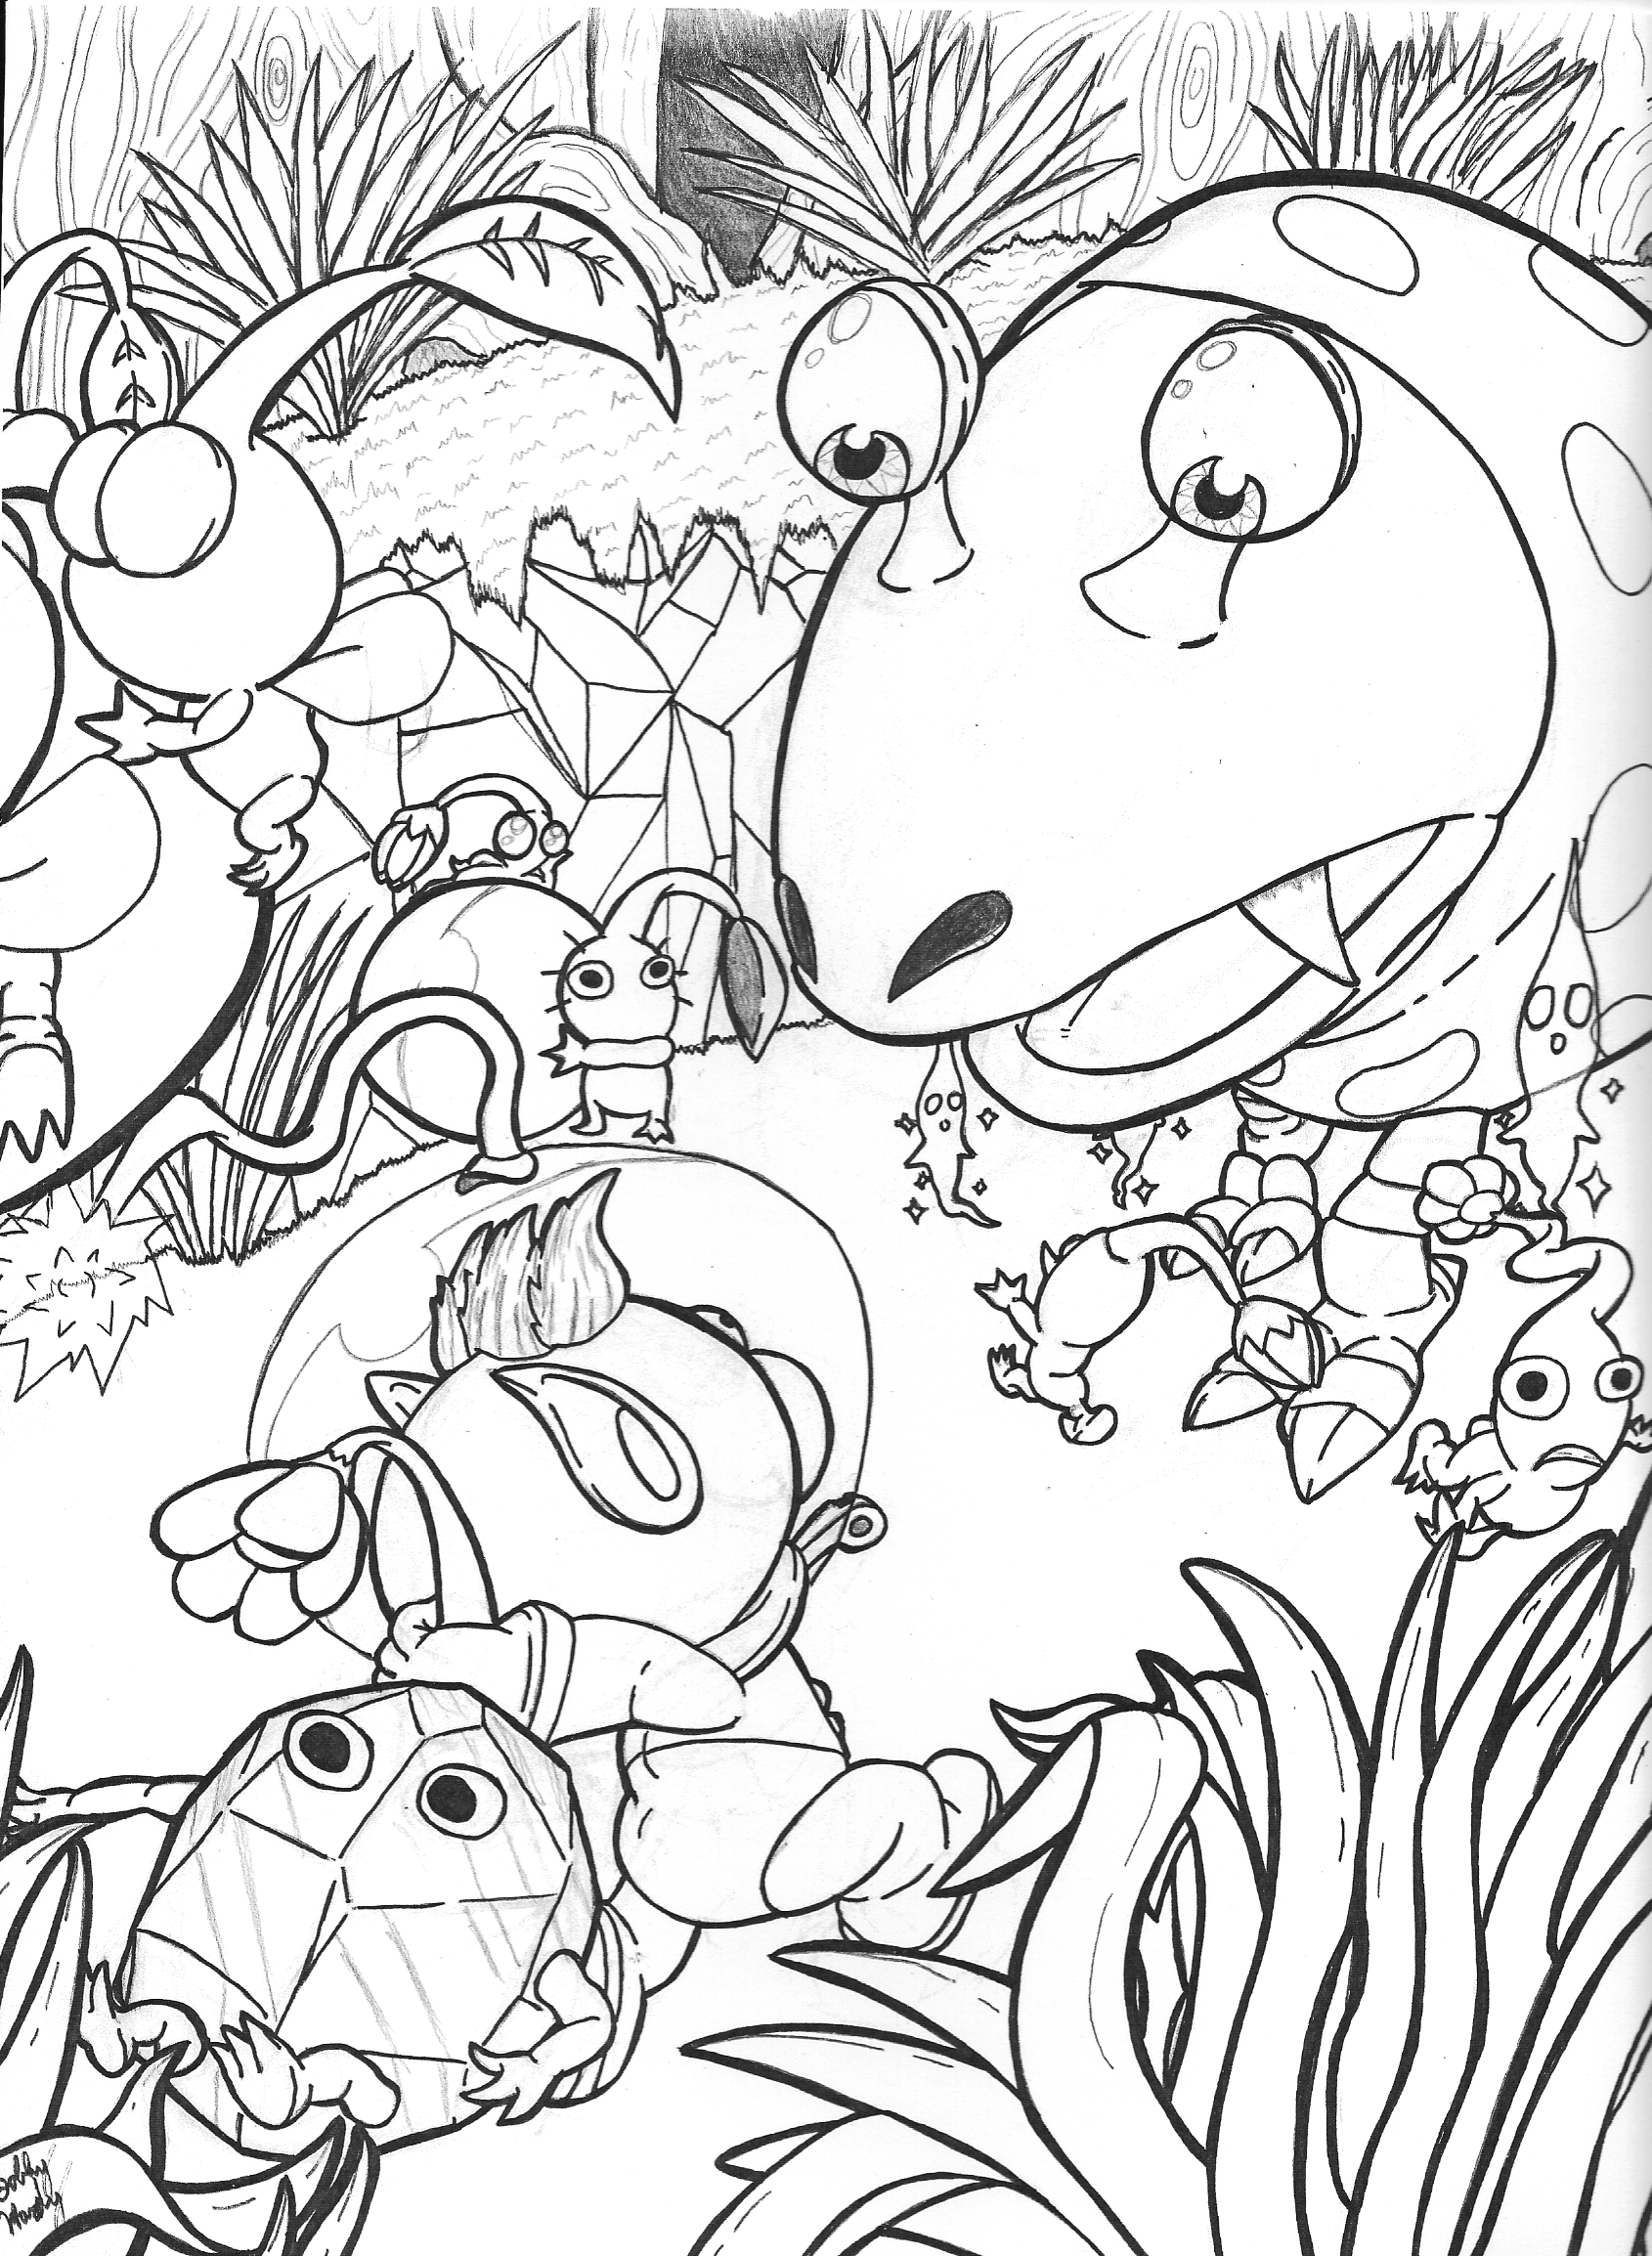 rock pikmin coloring pages - photo#2